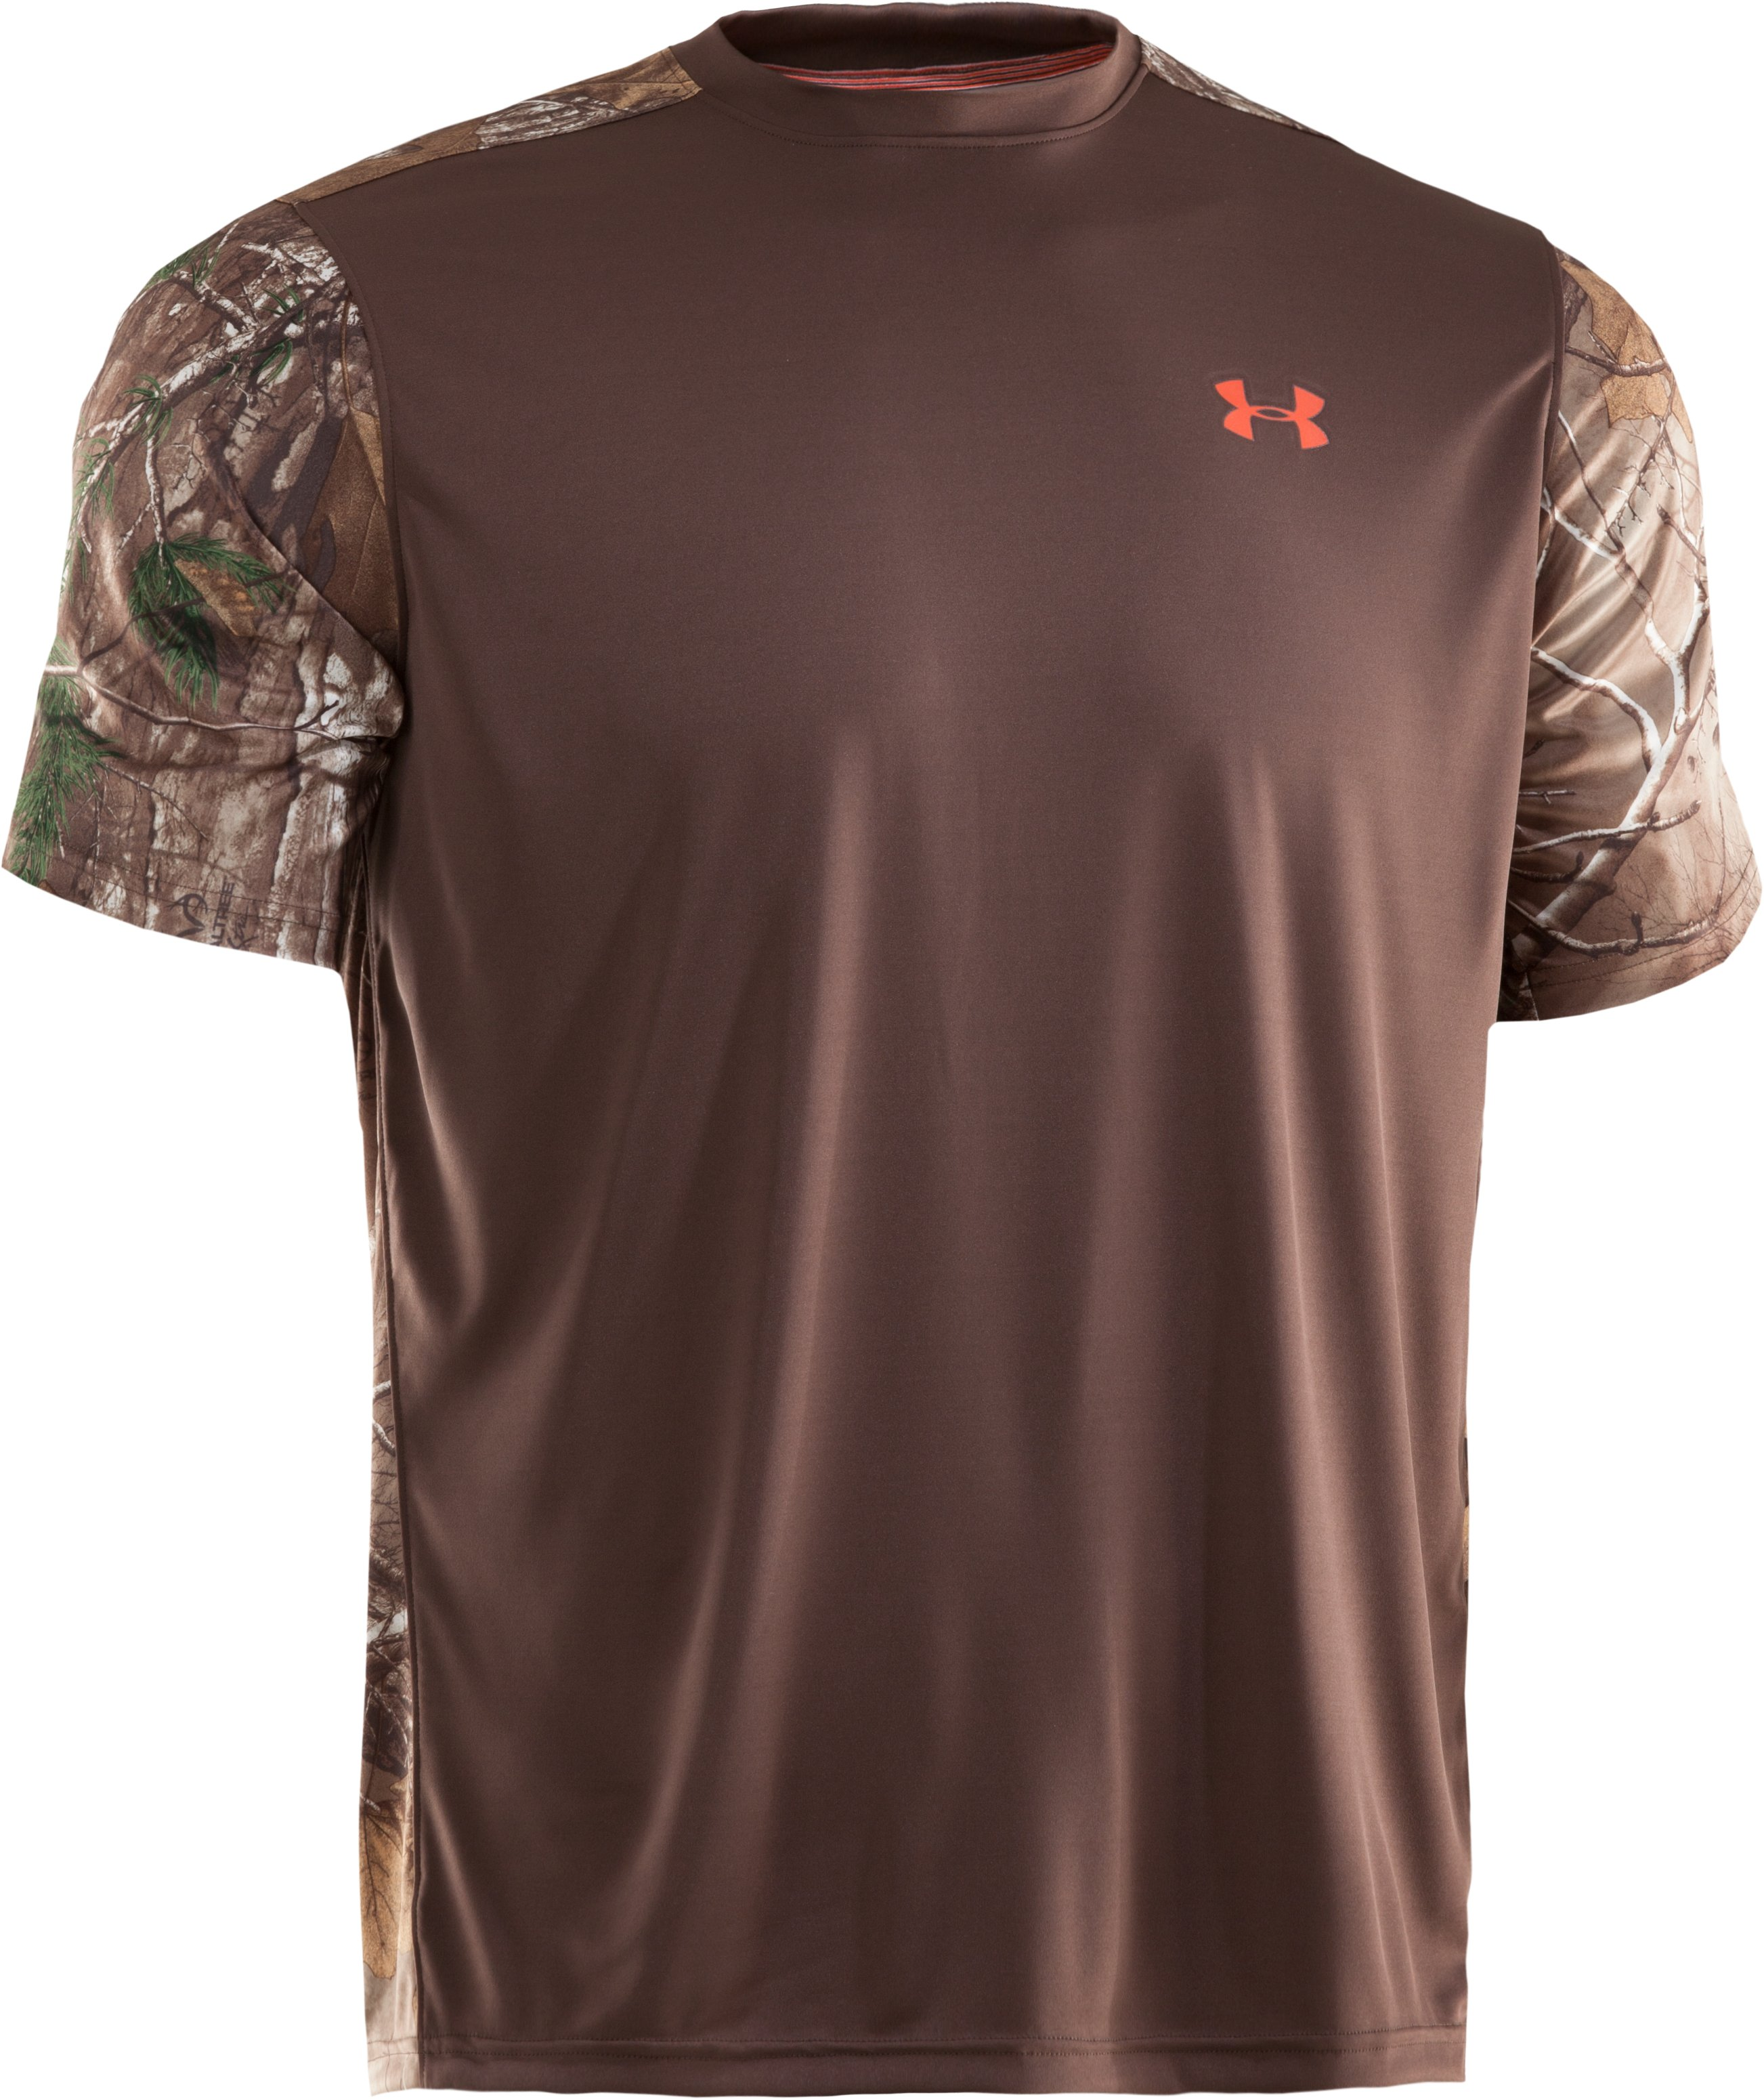 Men's Wylie Short Sleeve Camo T-Shirt, Timber